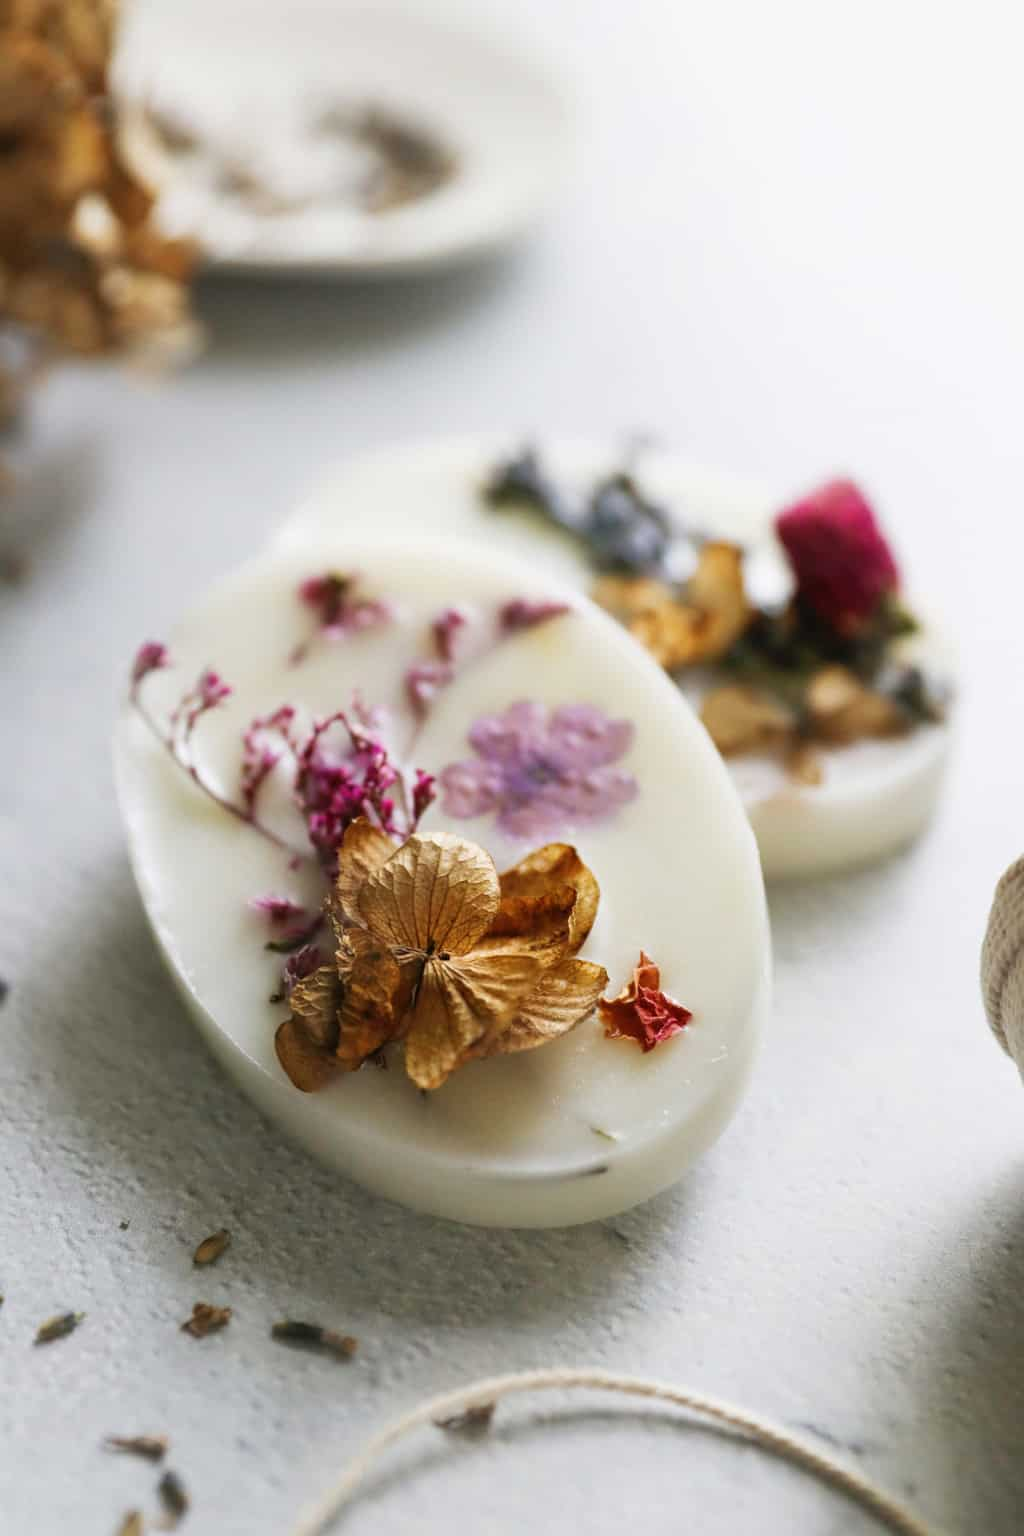 How to make wax sachets with dried flowers and essential oils